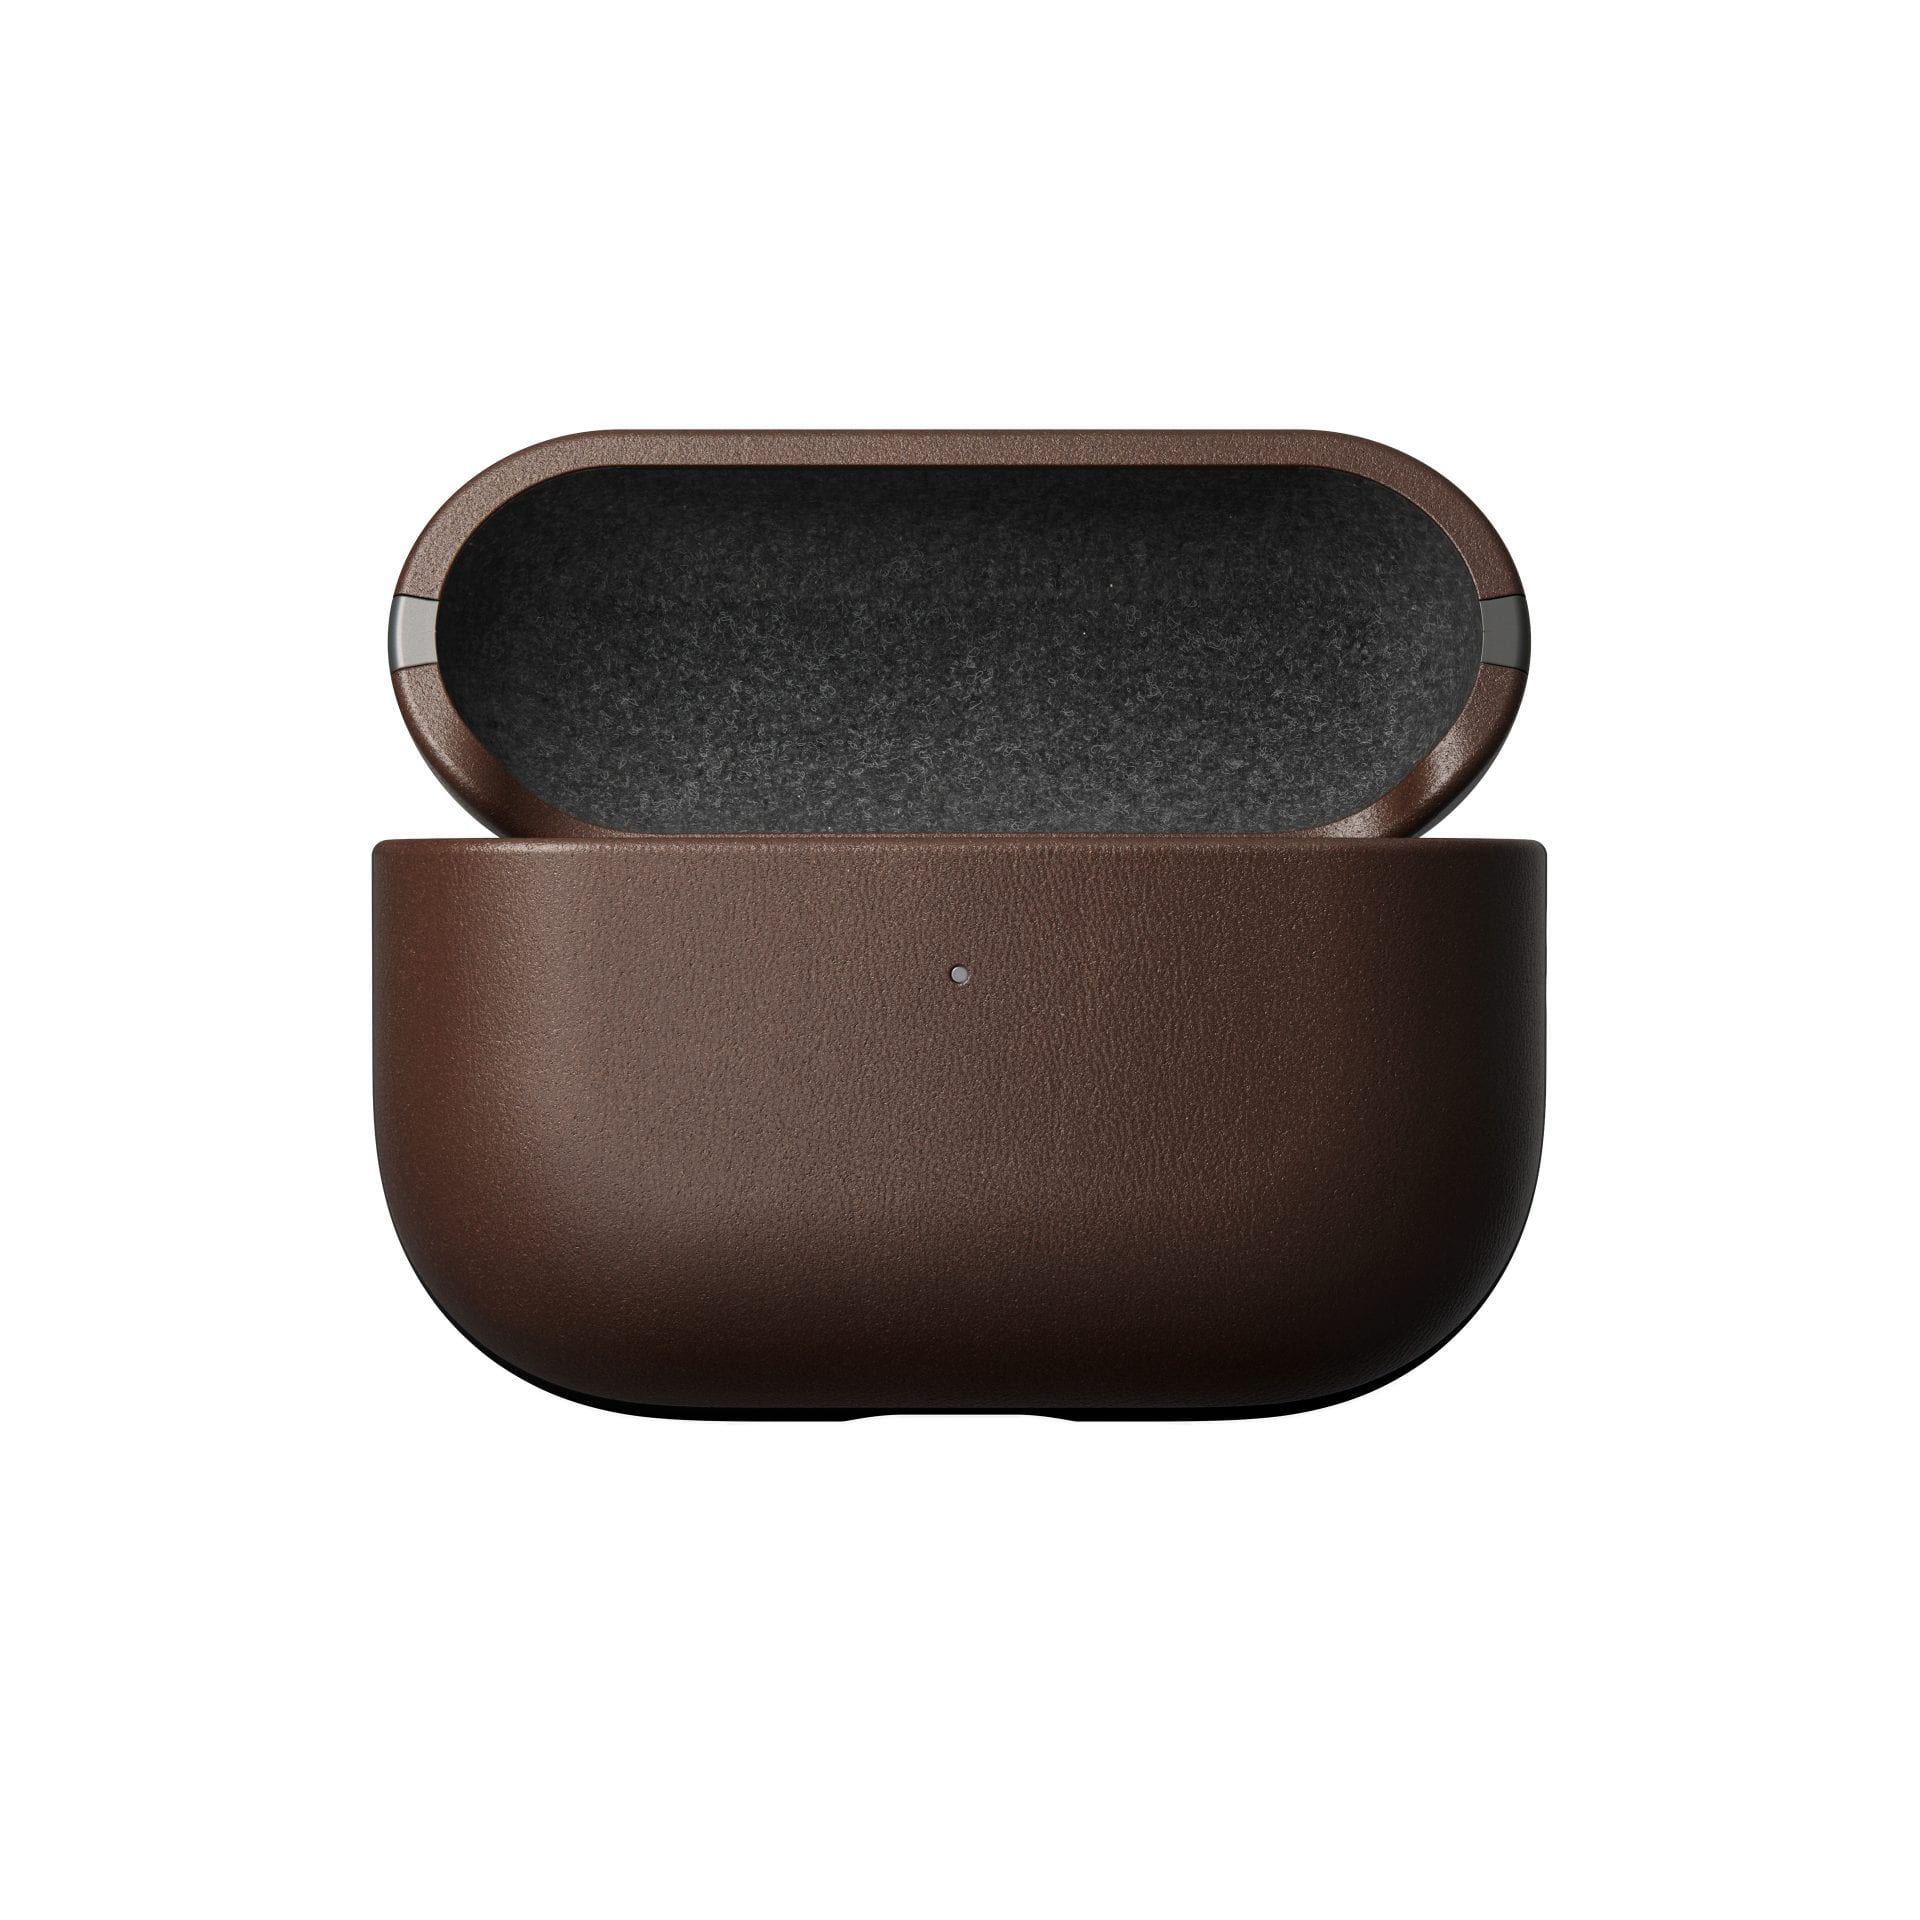 NOMAD Goods Rugged Case - Airpod Pro (Brown) - Netnaturshop